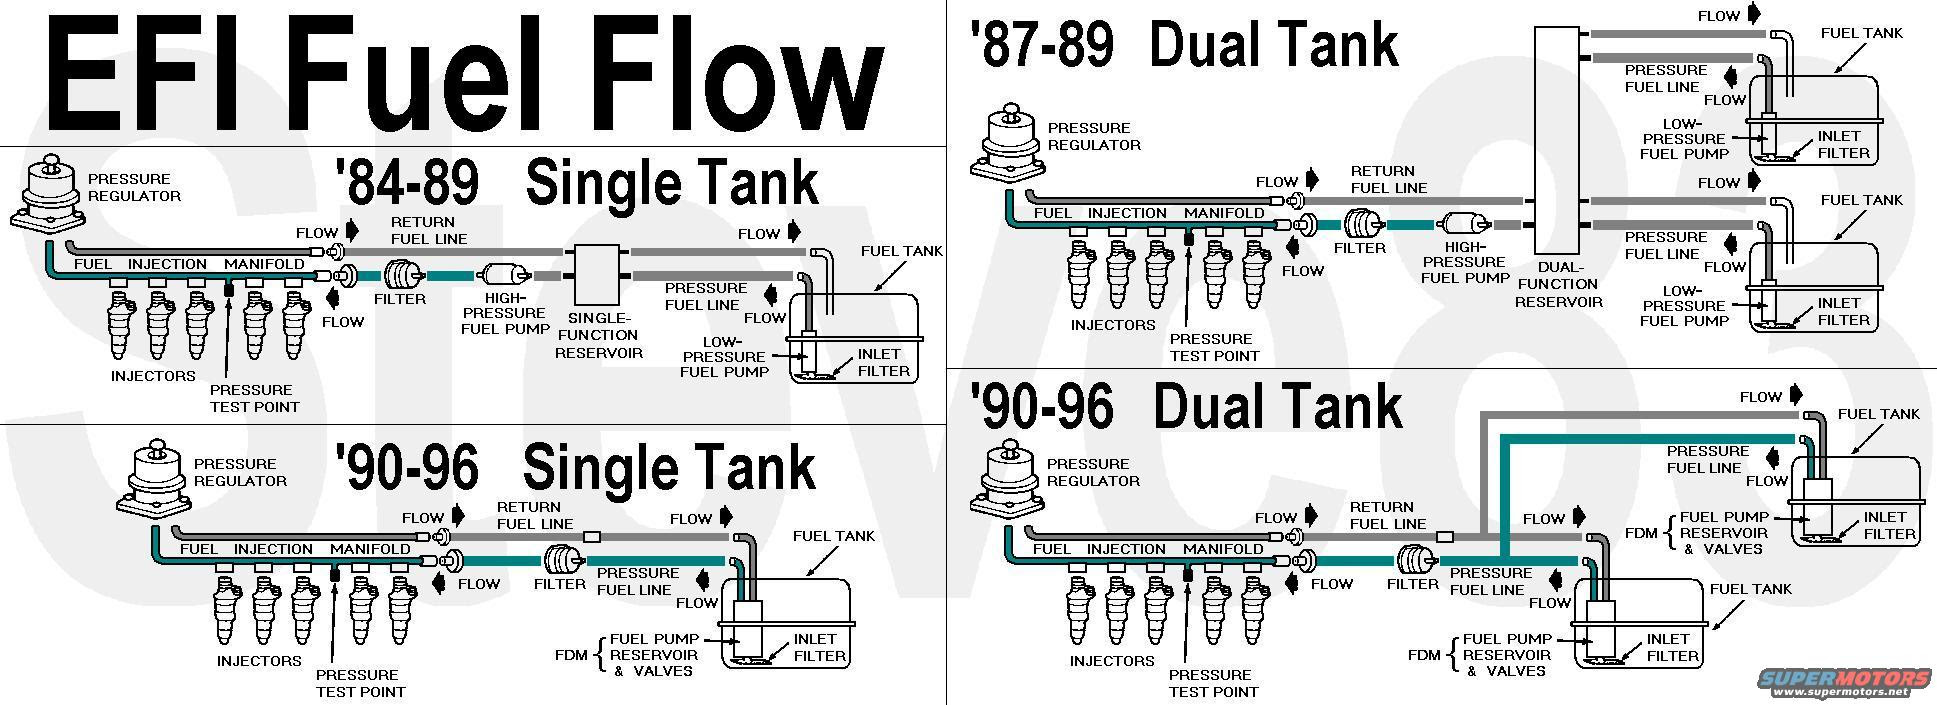 Ford F 150 Dual Tank Fuel System Diagram Wiring Diagram Balance A Balance A Musikami It